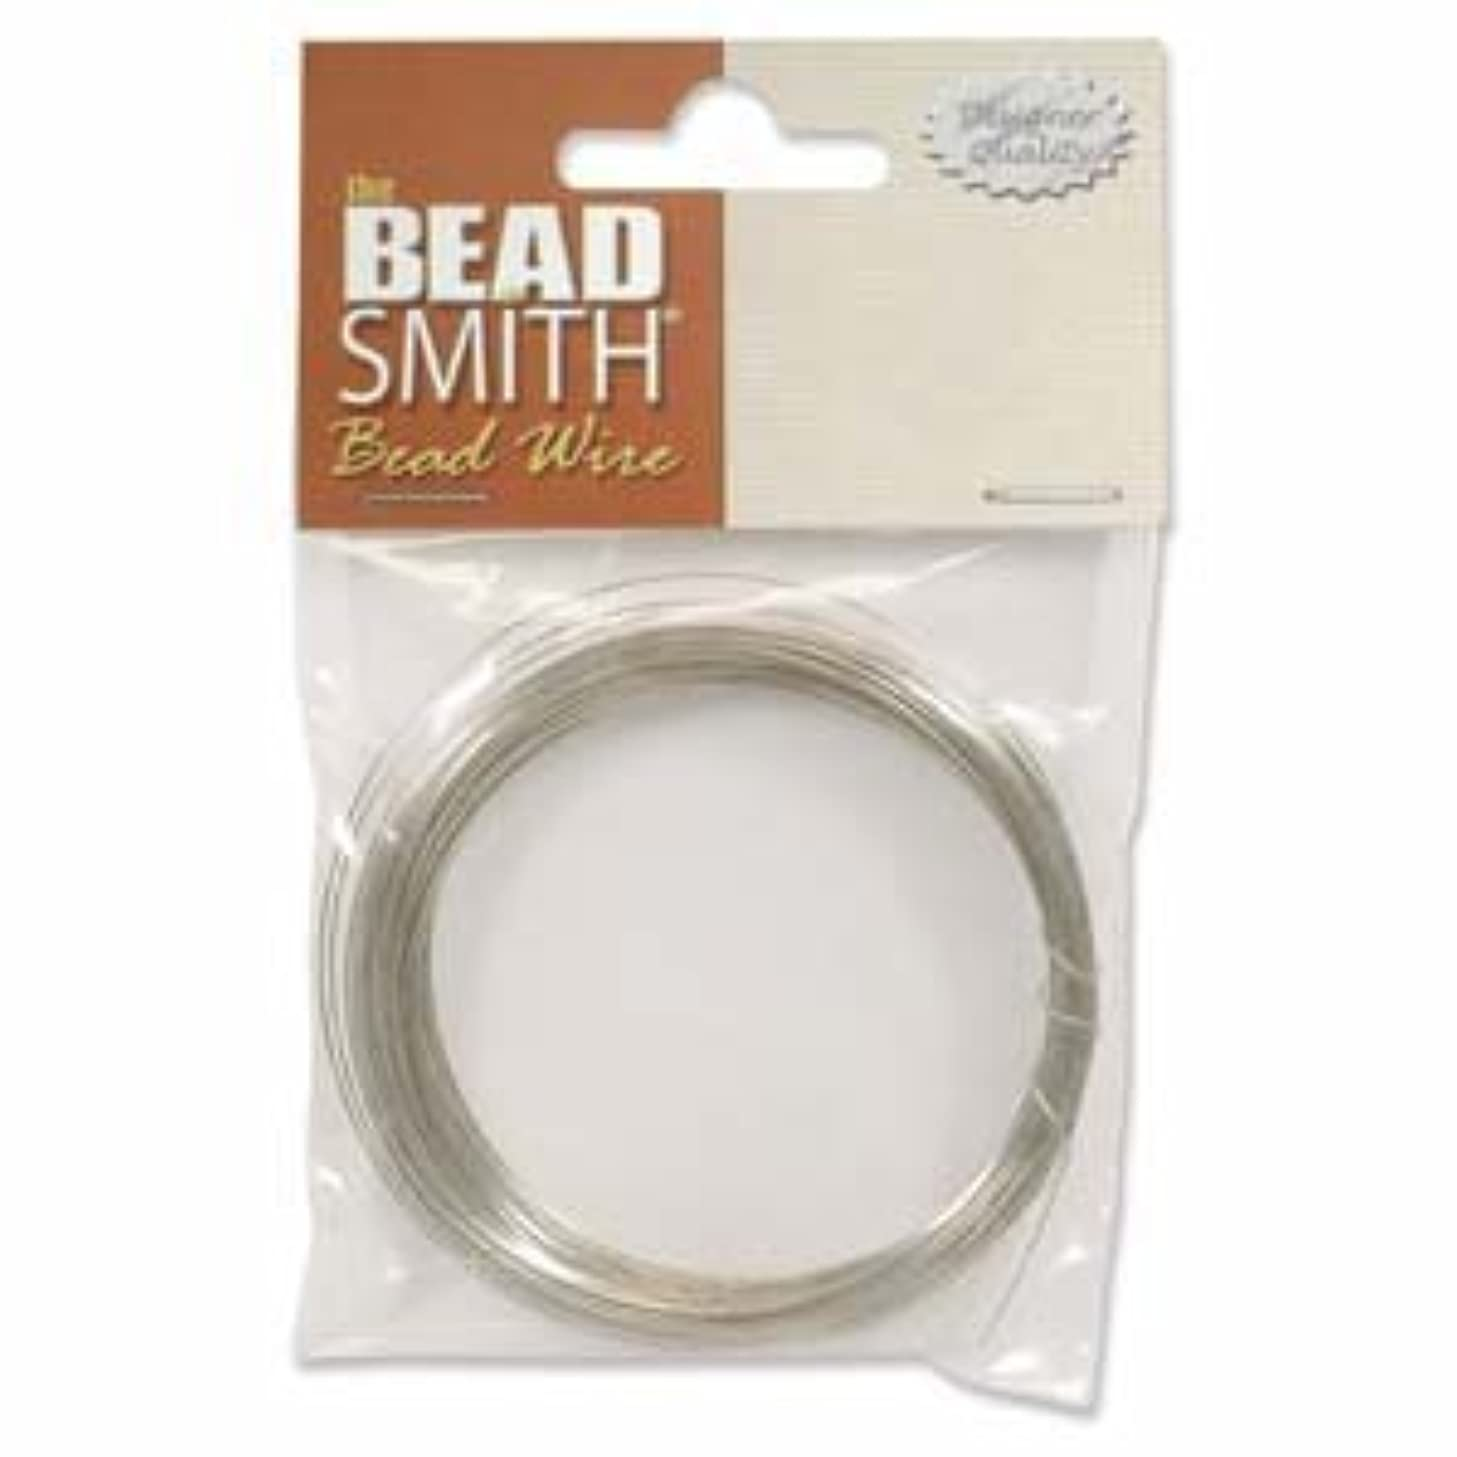 Brass German Bead Craft Wire 26 Gauge .4 Dia 20 Meters 42651